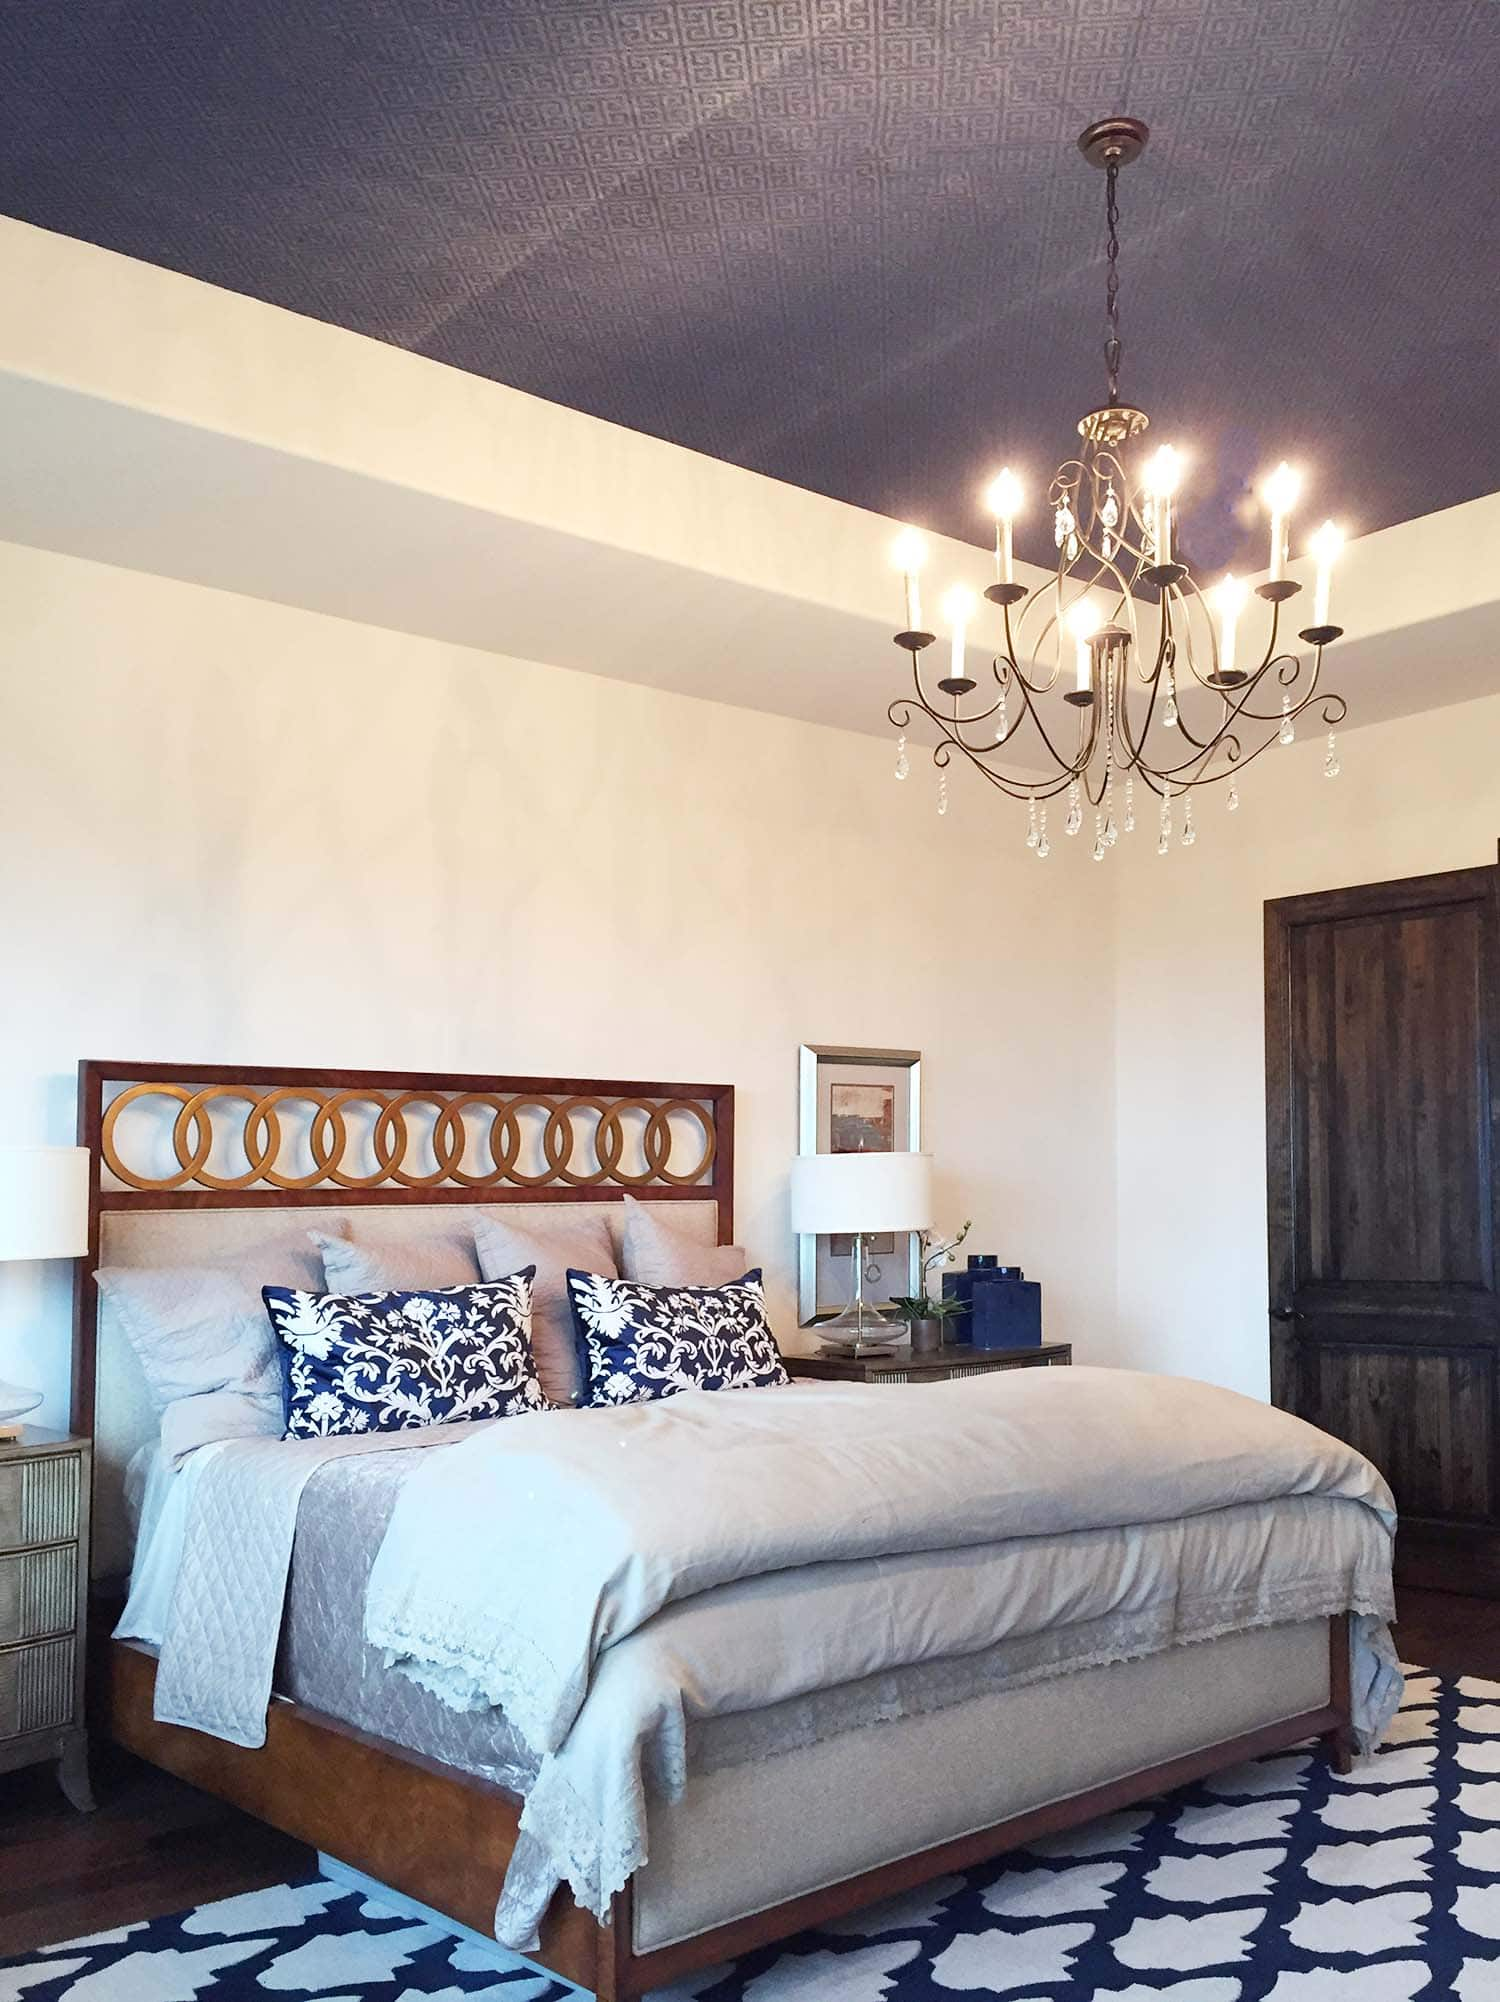 Accent ceiling with blue grasscloth wallpaper install by Paper Moon Painting